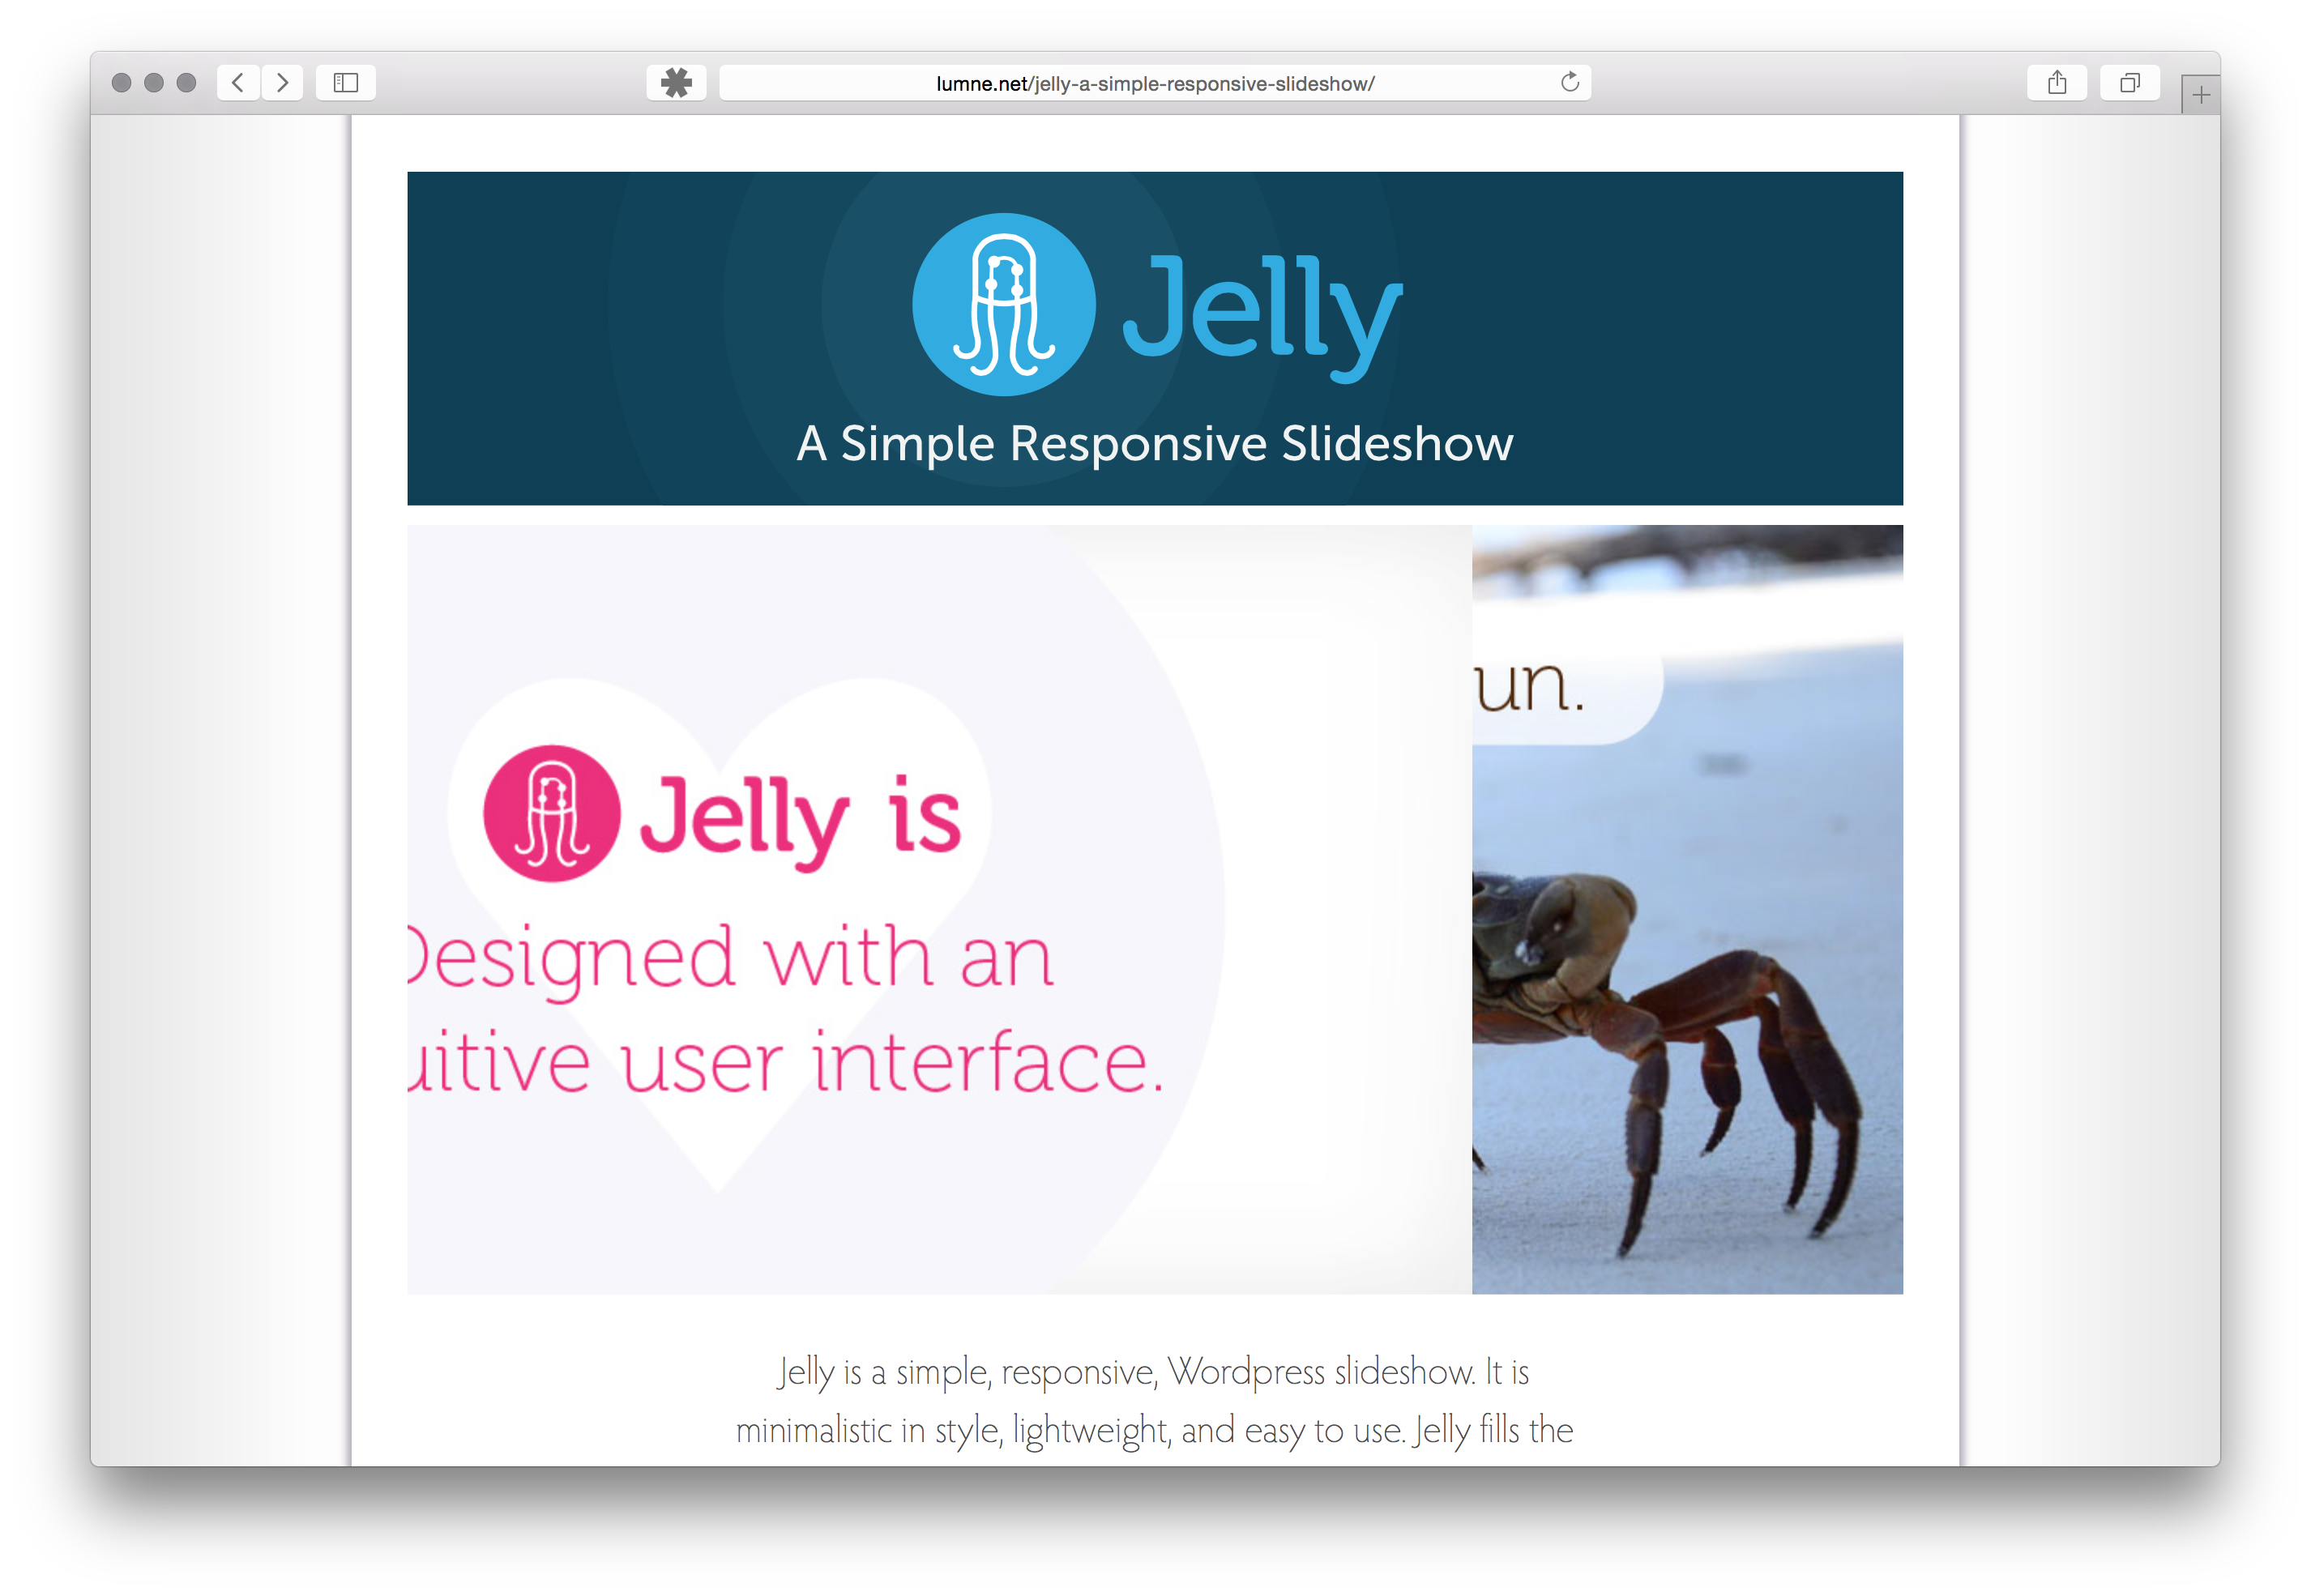 jelly screenshot 1